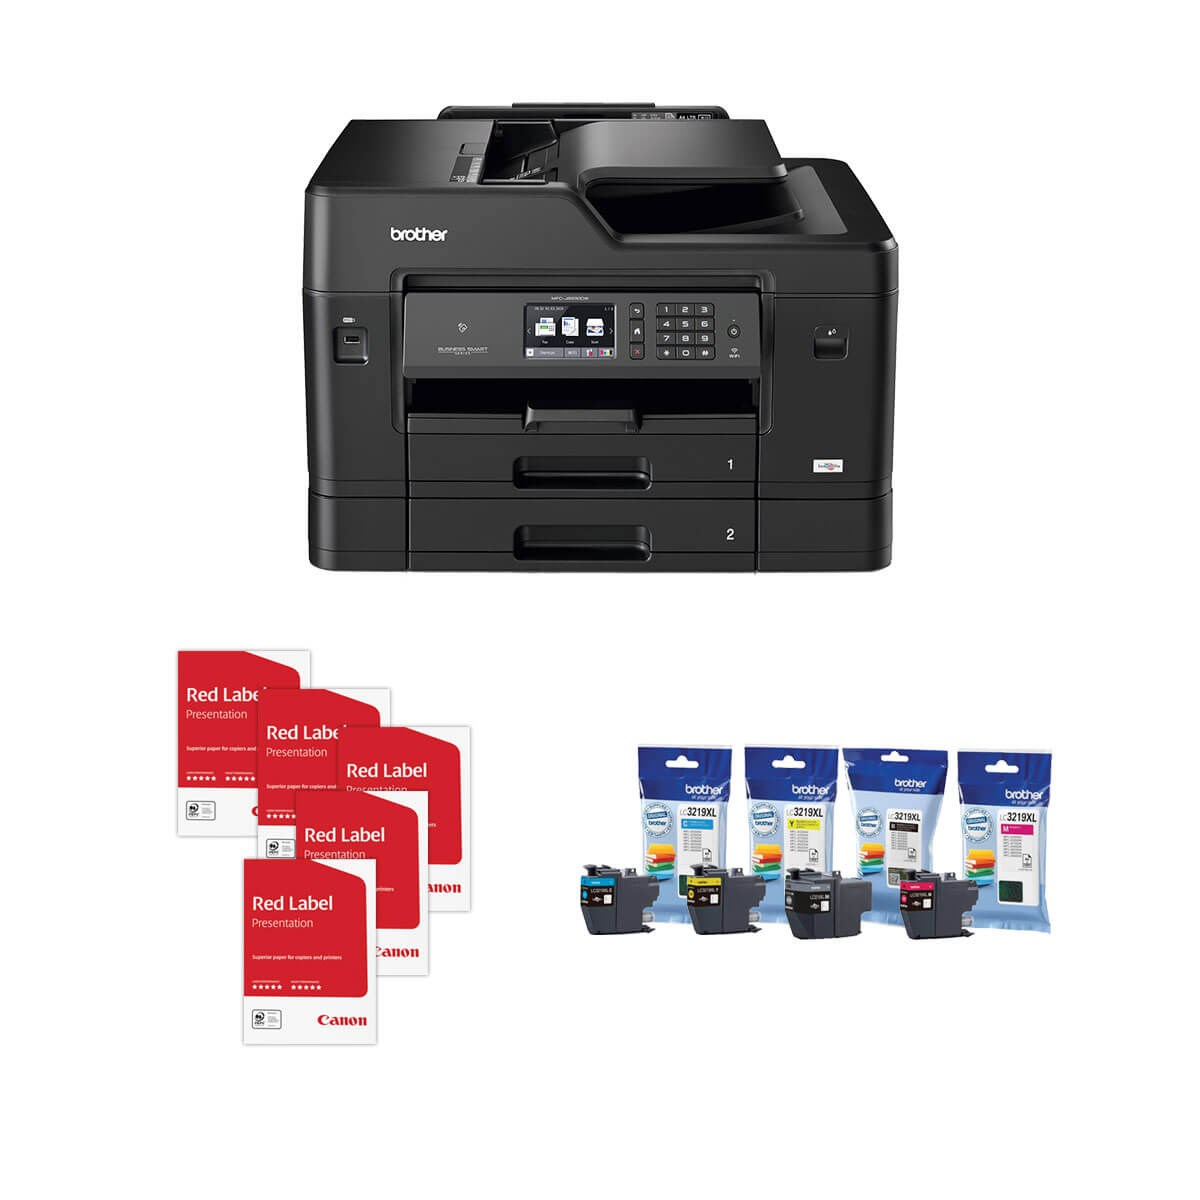 Buy any printer and get 10% off on all ink and paper